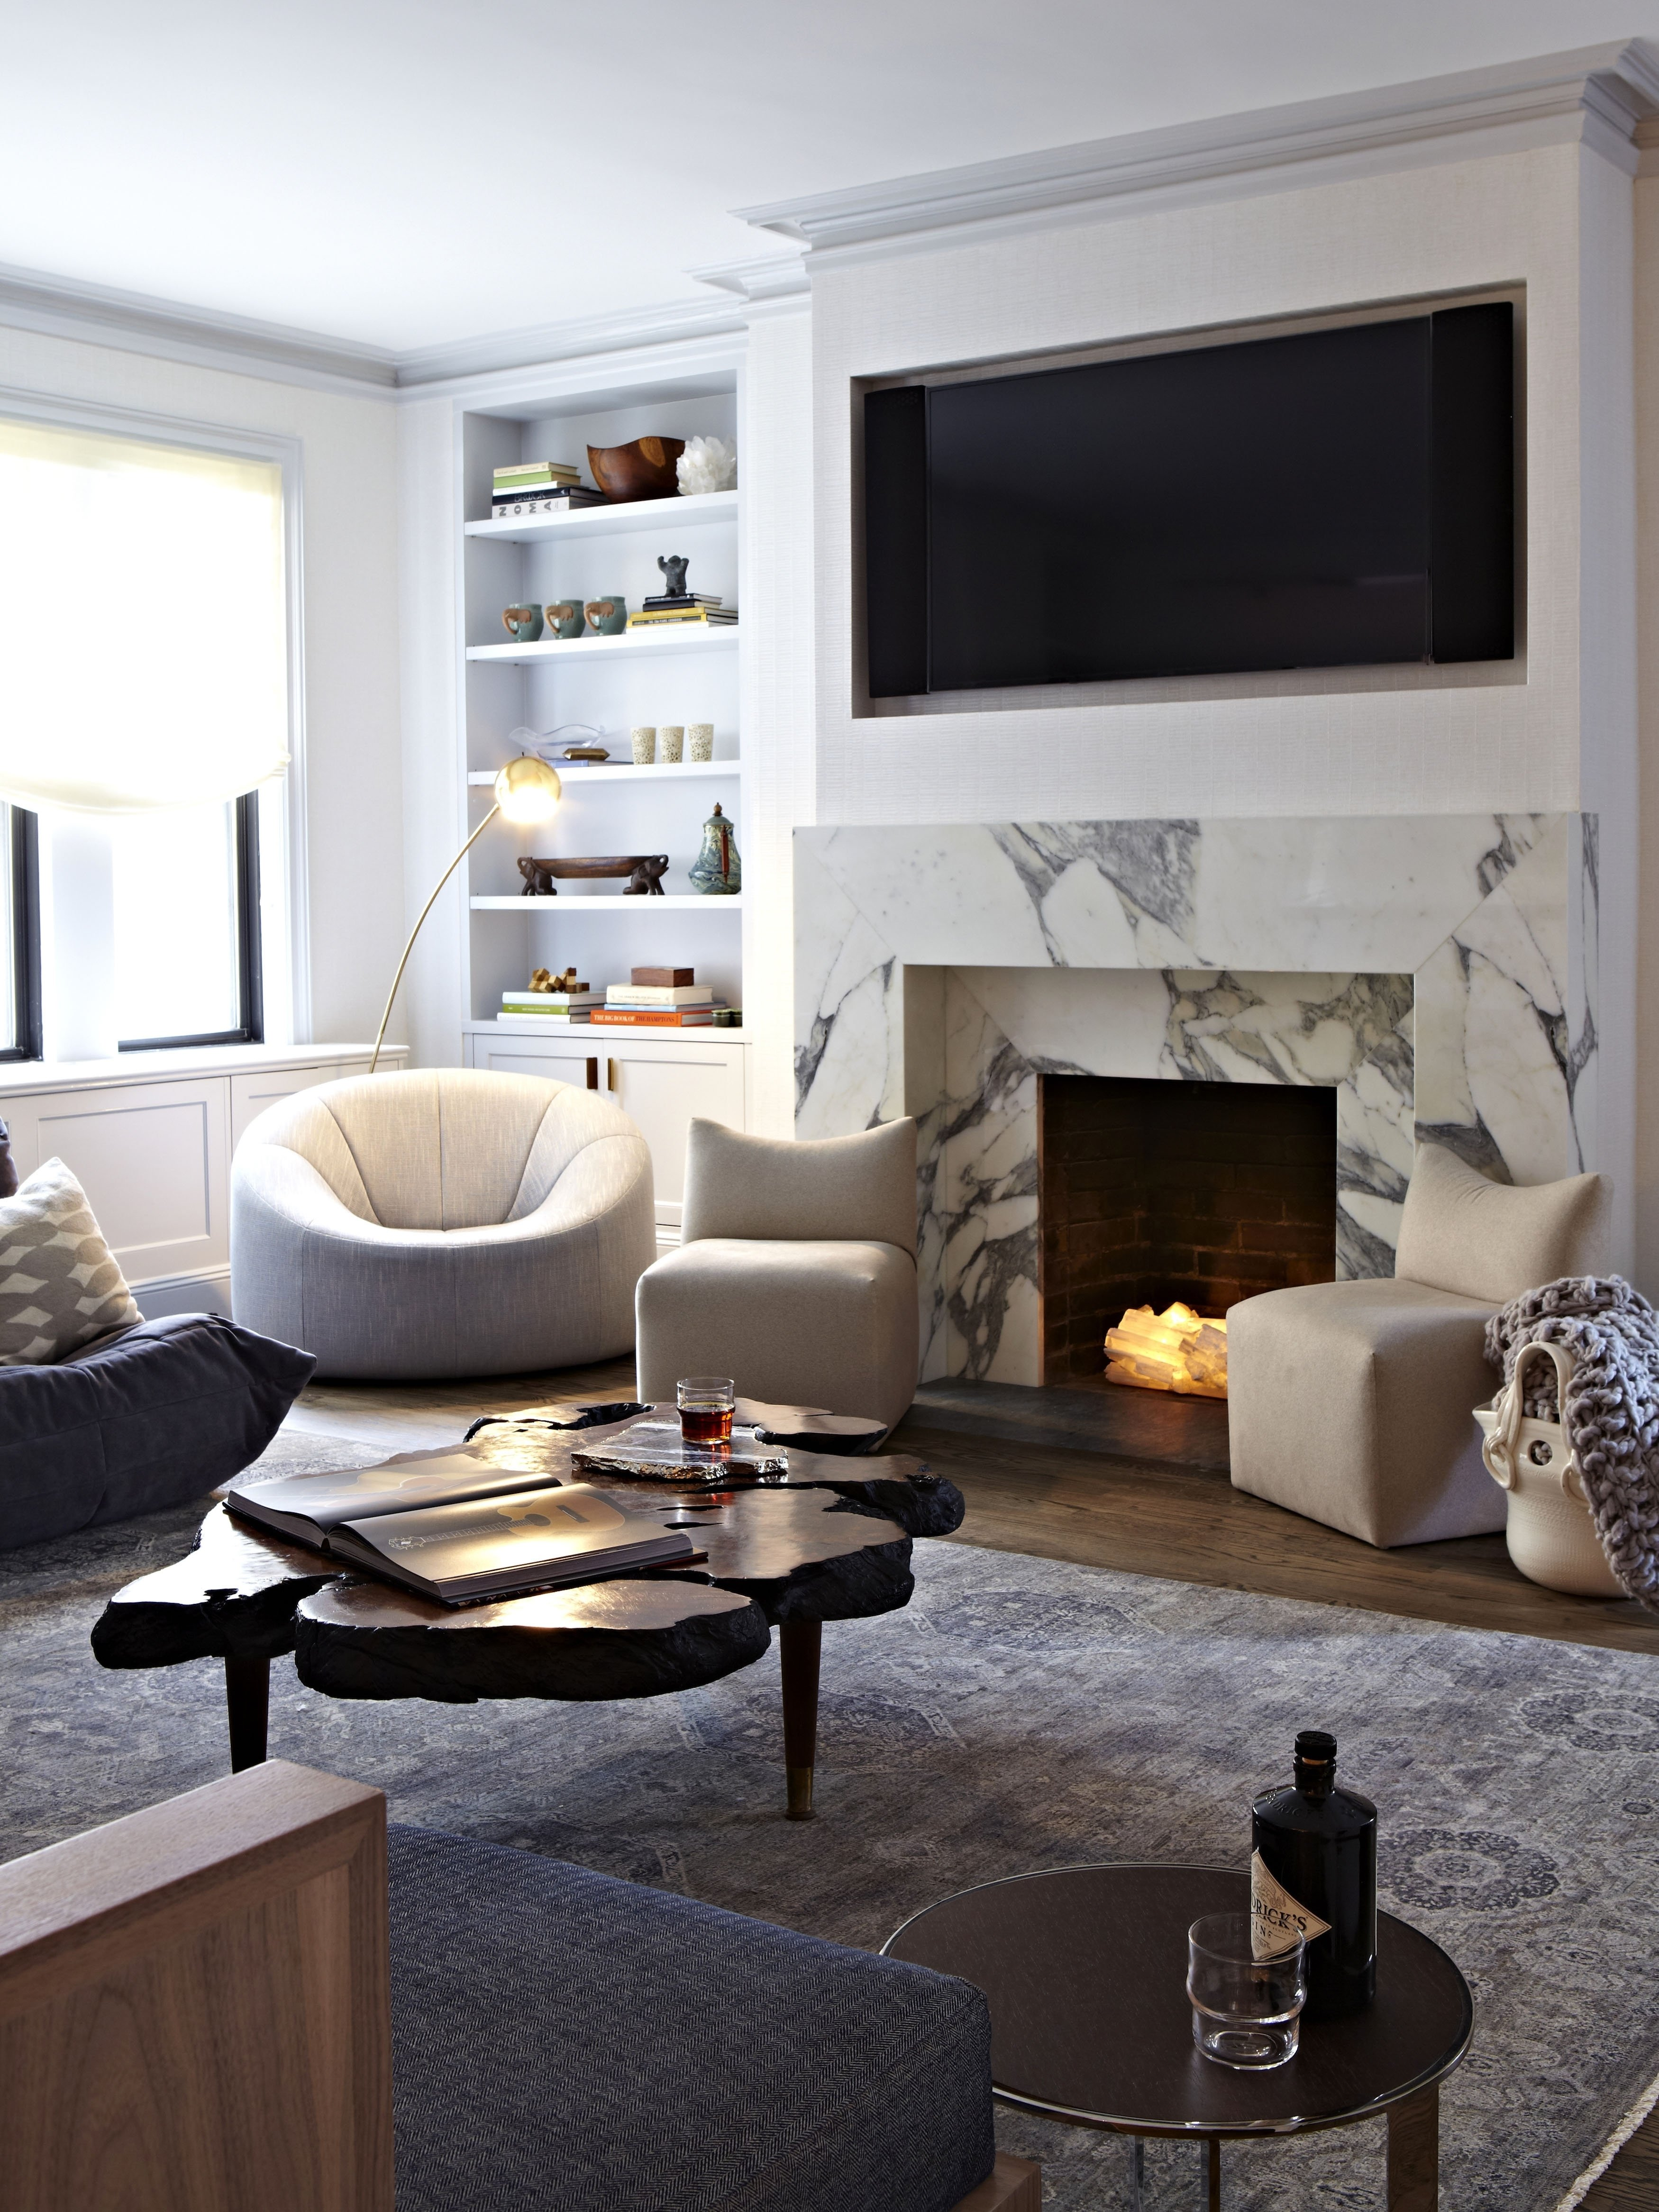 10 Lovely Living Room With Fireplace Ideas luxury living room decoration with recessed tv wall mount above 2020